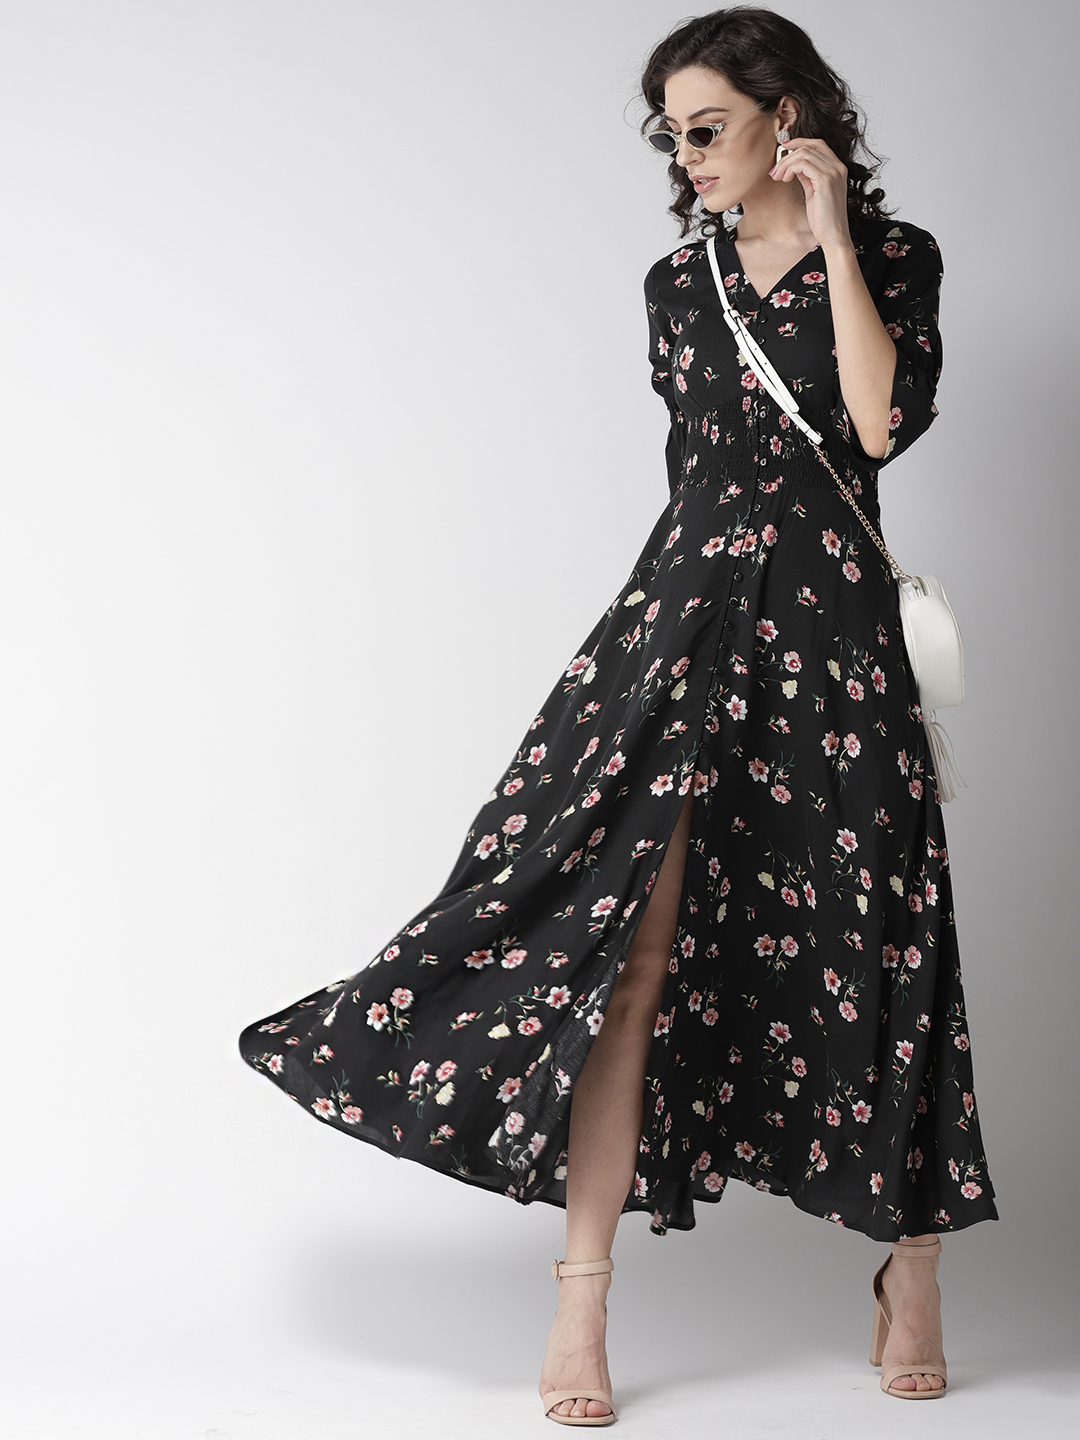 Dresses-Spot On Style Floral Maxi Dress4